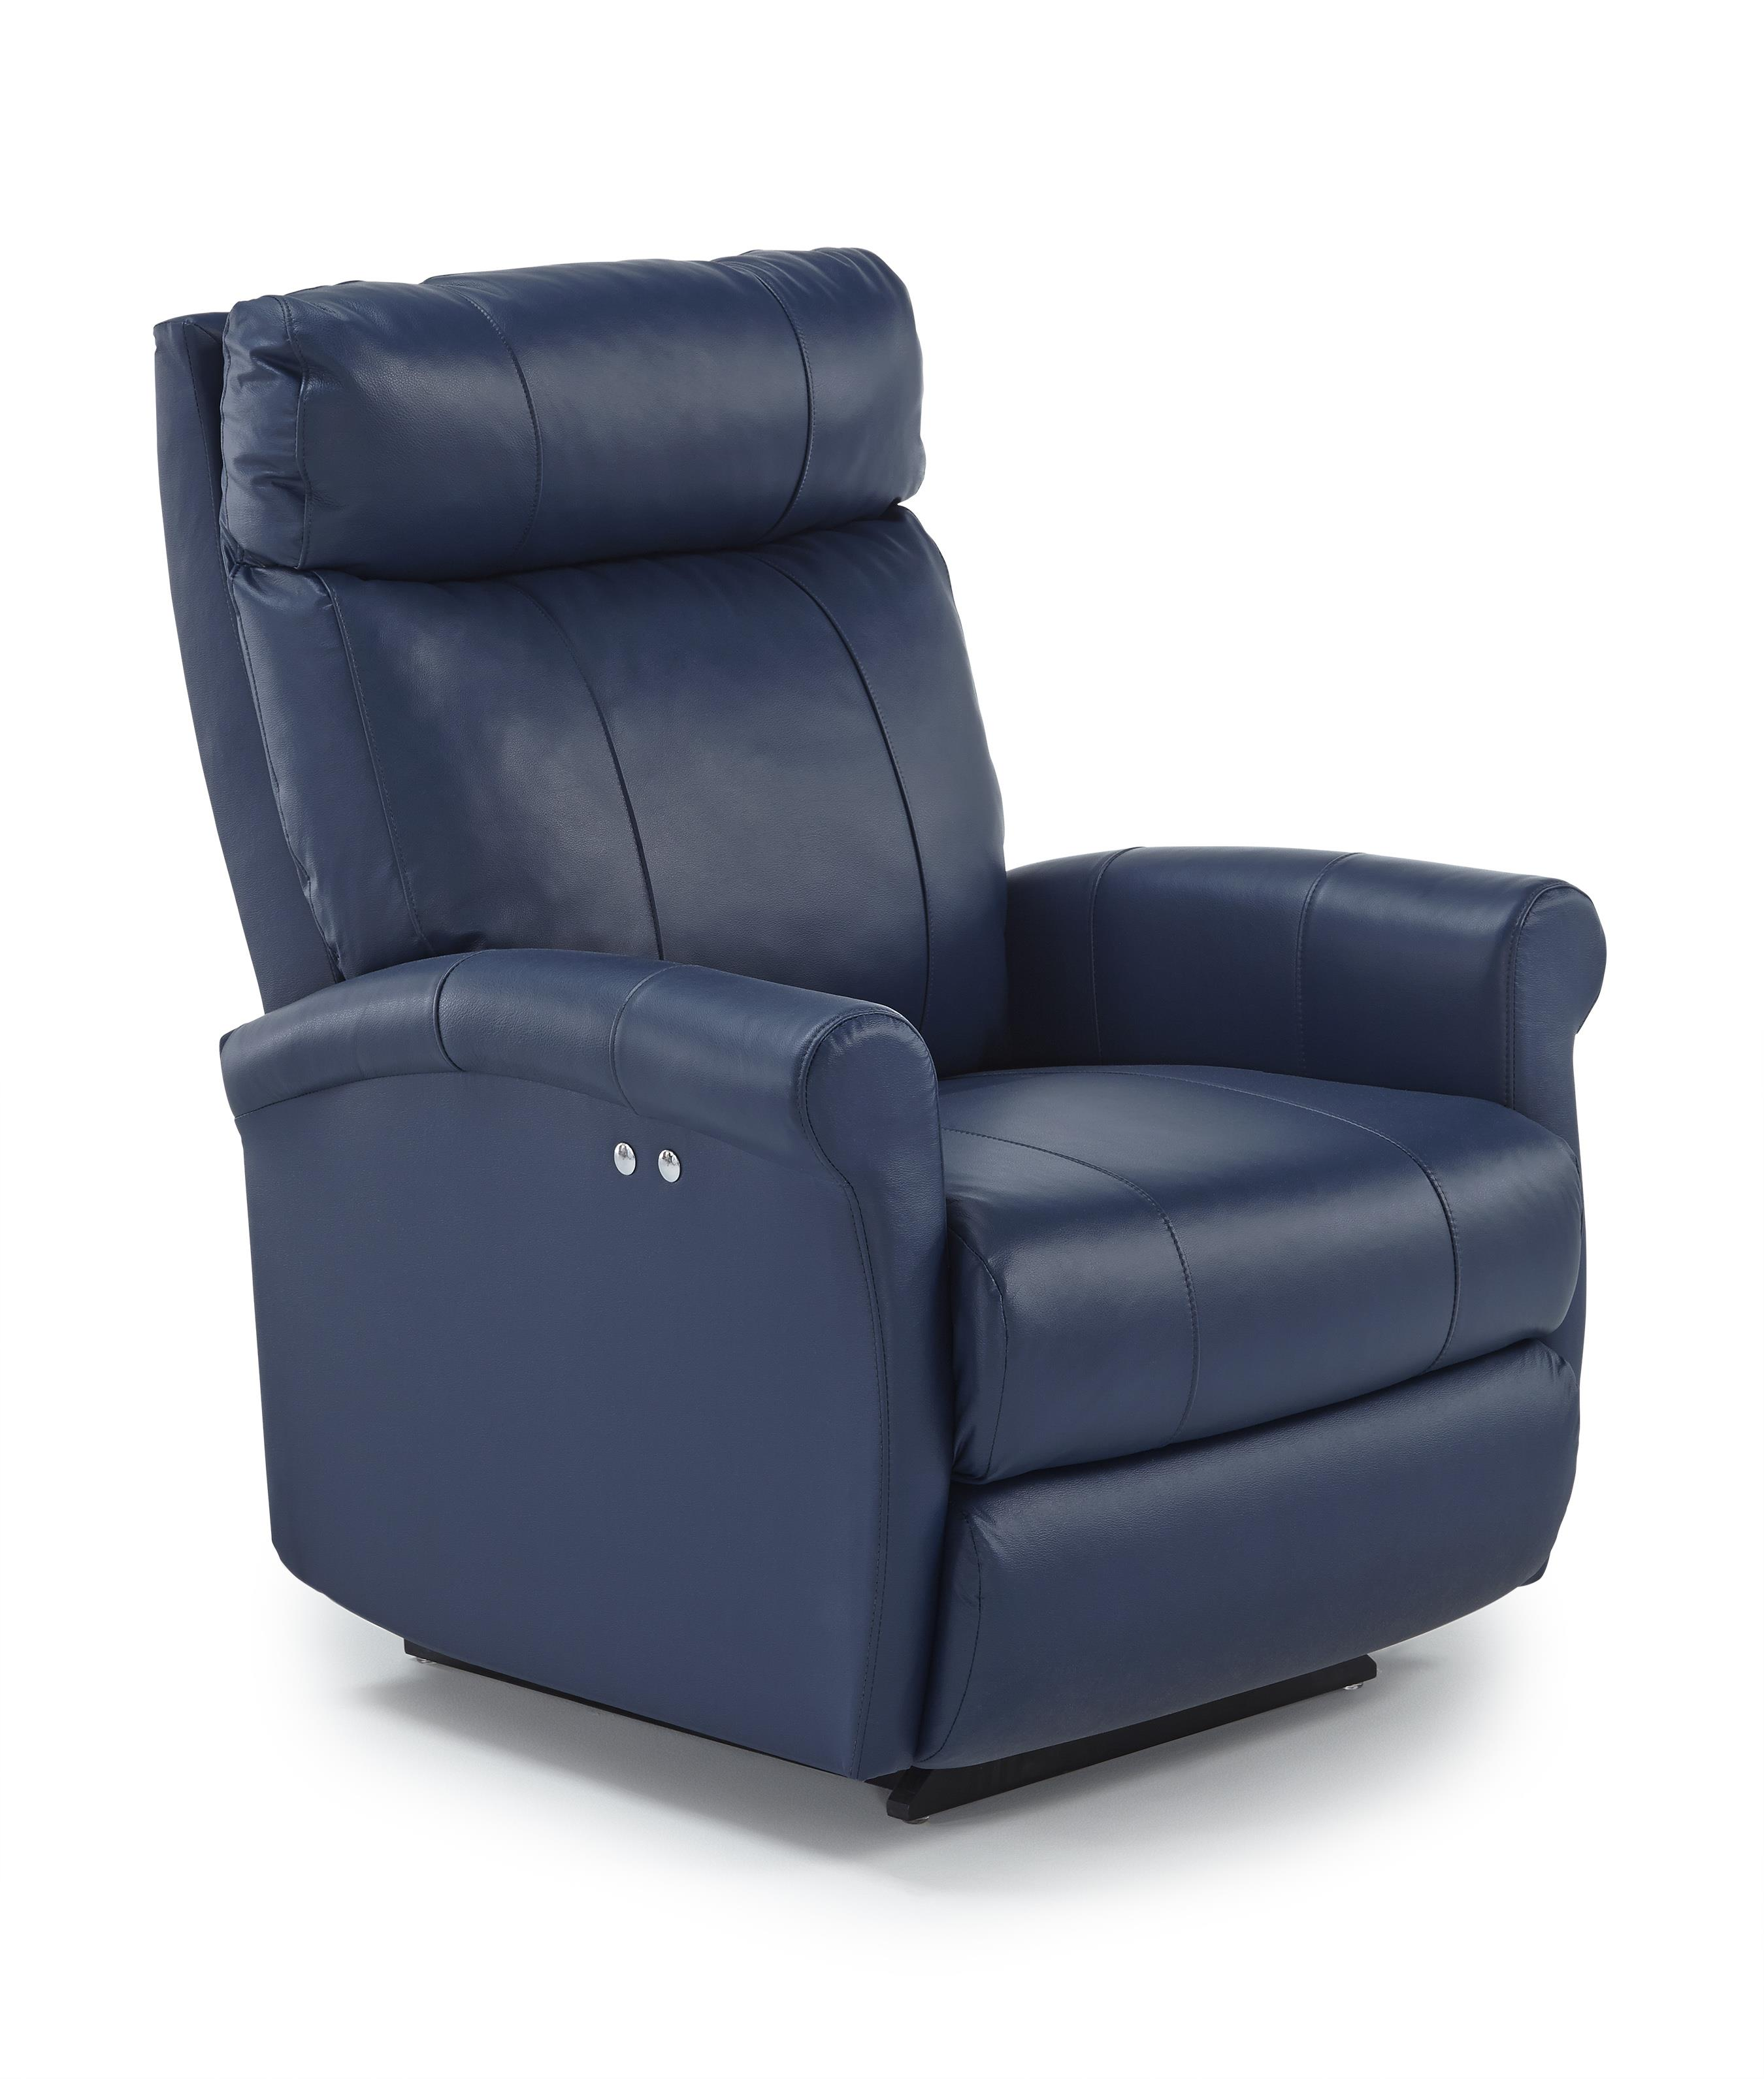 Best Home Furnishings Recliners Petite Power Rocking